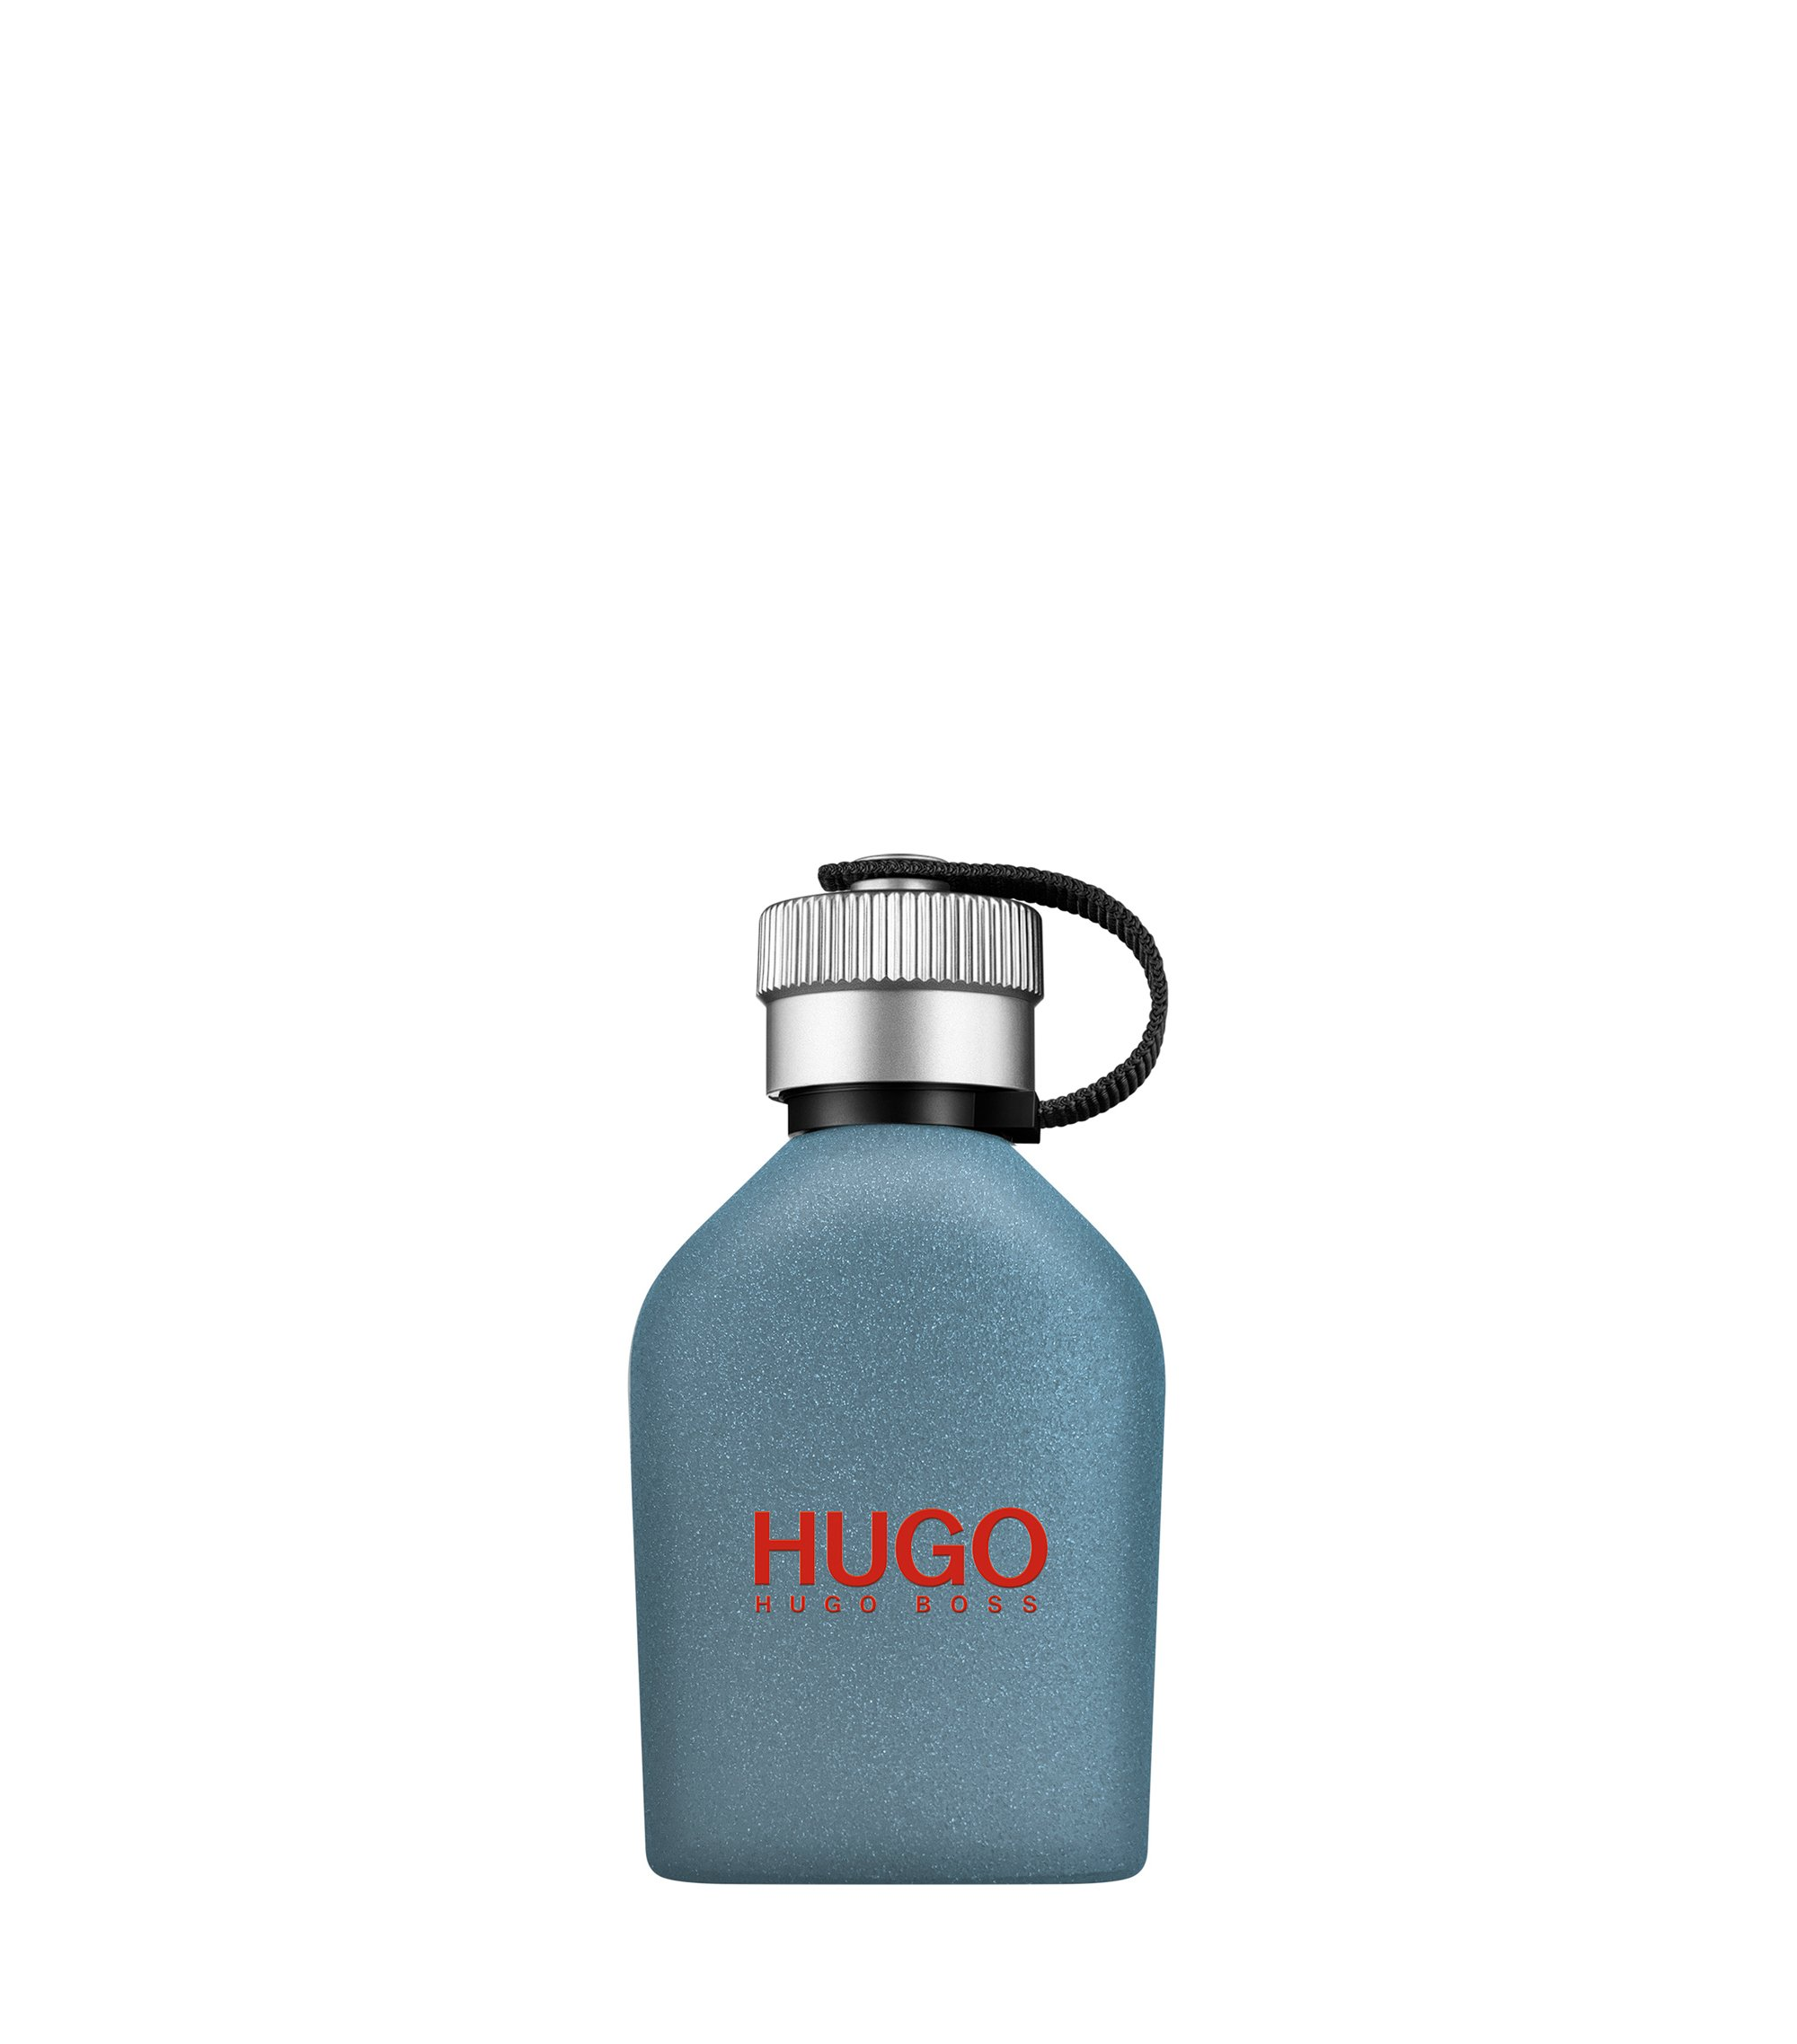 Eau de Toilette HUGO Urban Journey, 75 ml, Assorted-Pre-Pack